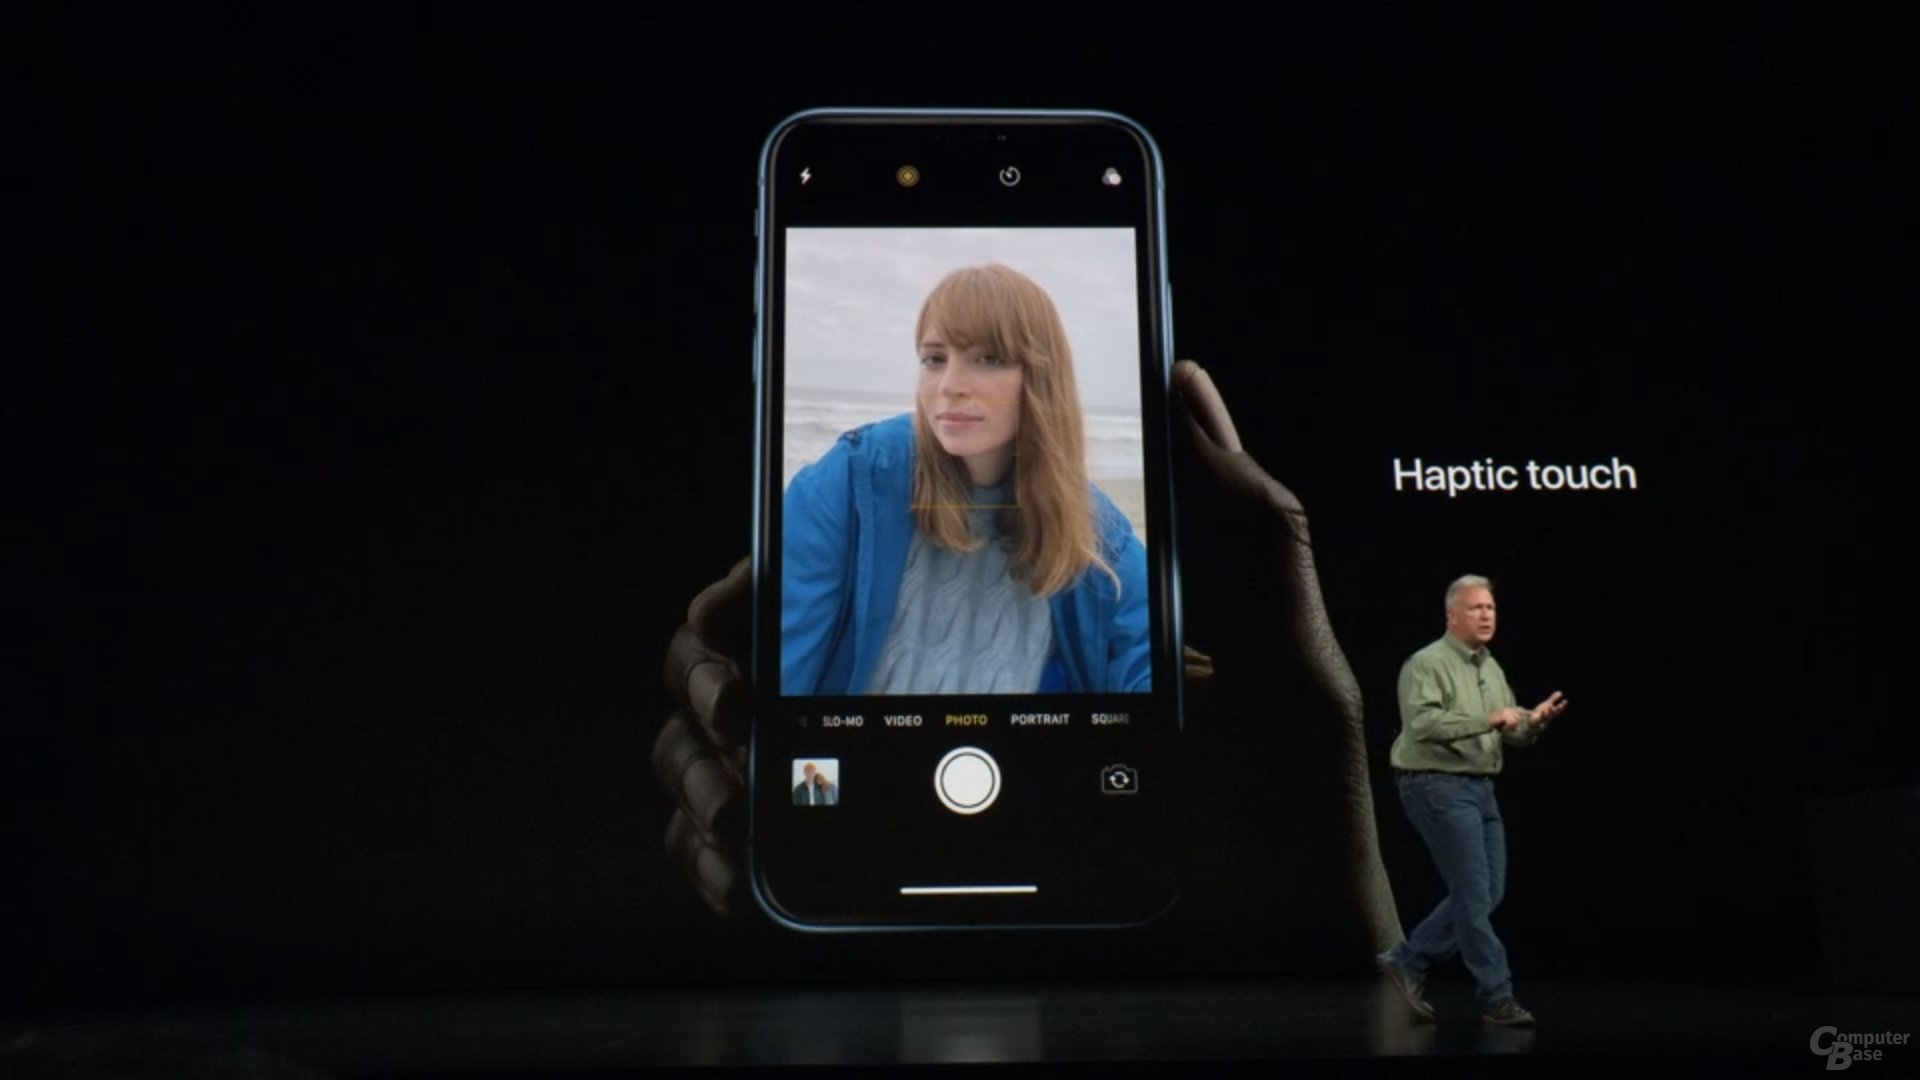 Apple iPhone Xr – Haptic Touch statt 3D Touch